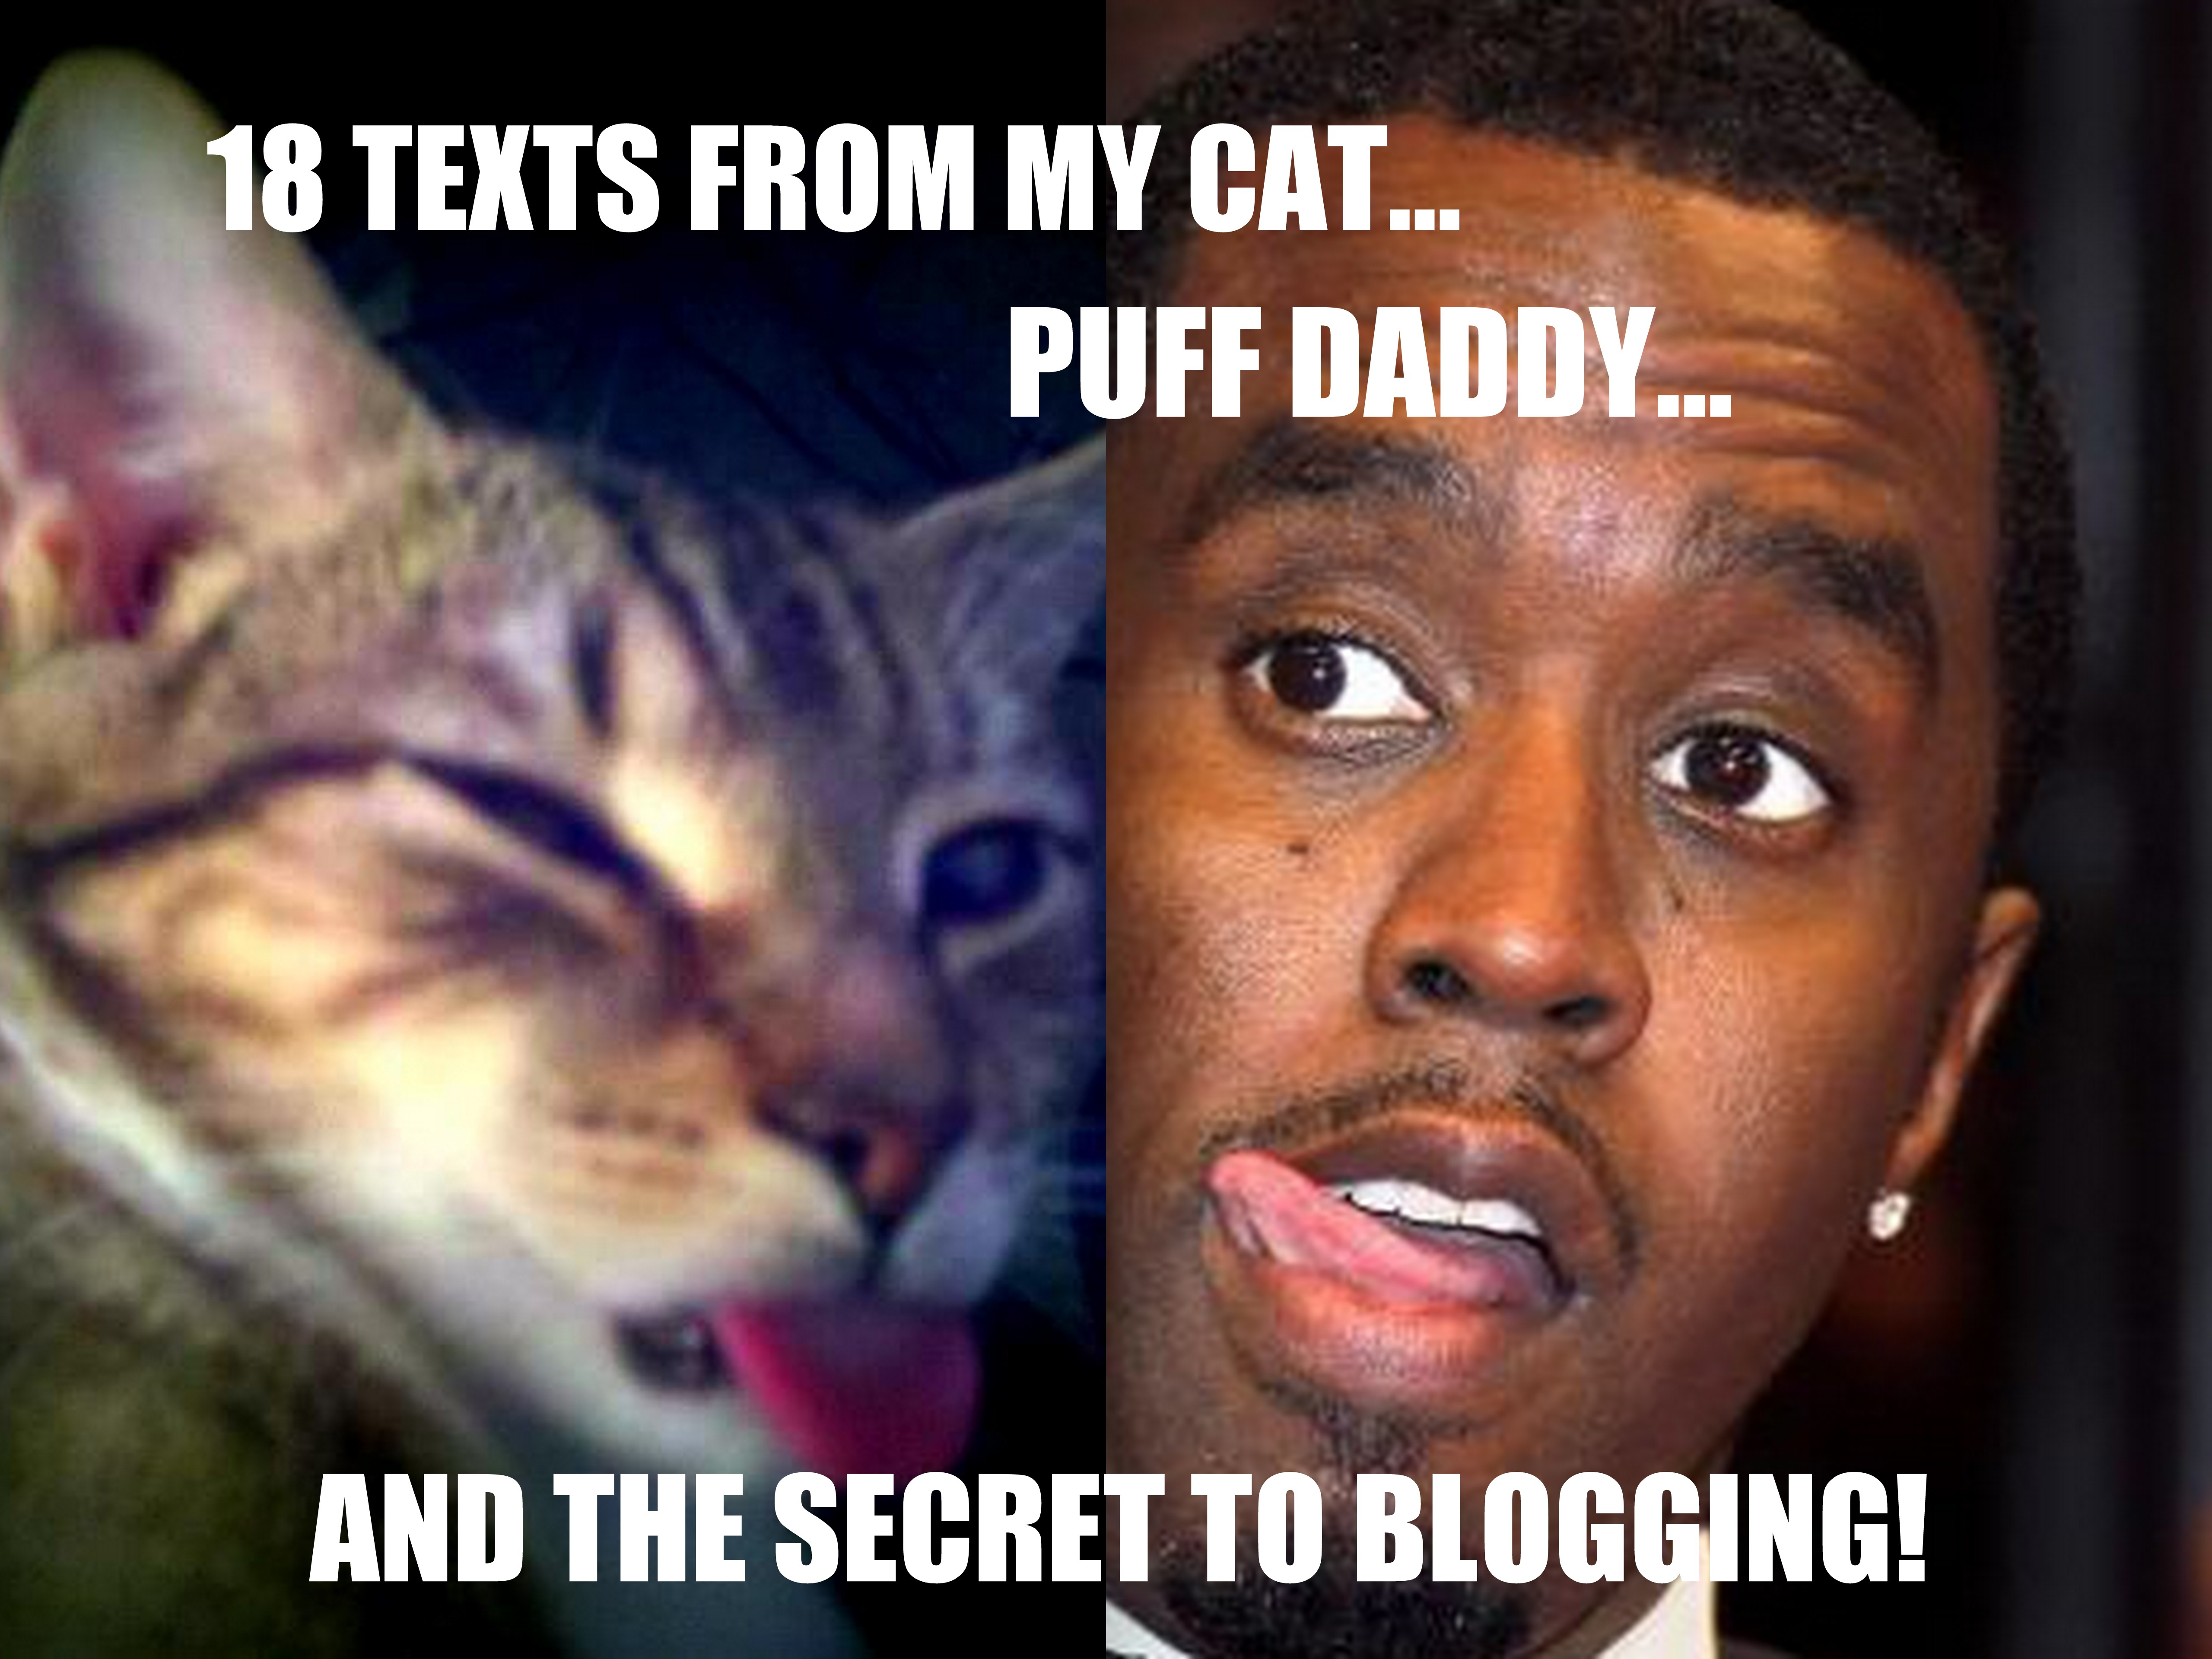 18 Texts From My Cat, Puff Daddy, and the Secret to Blogging!